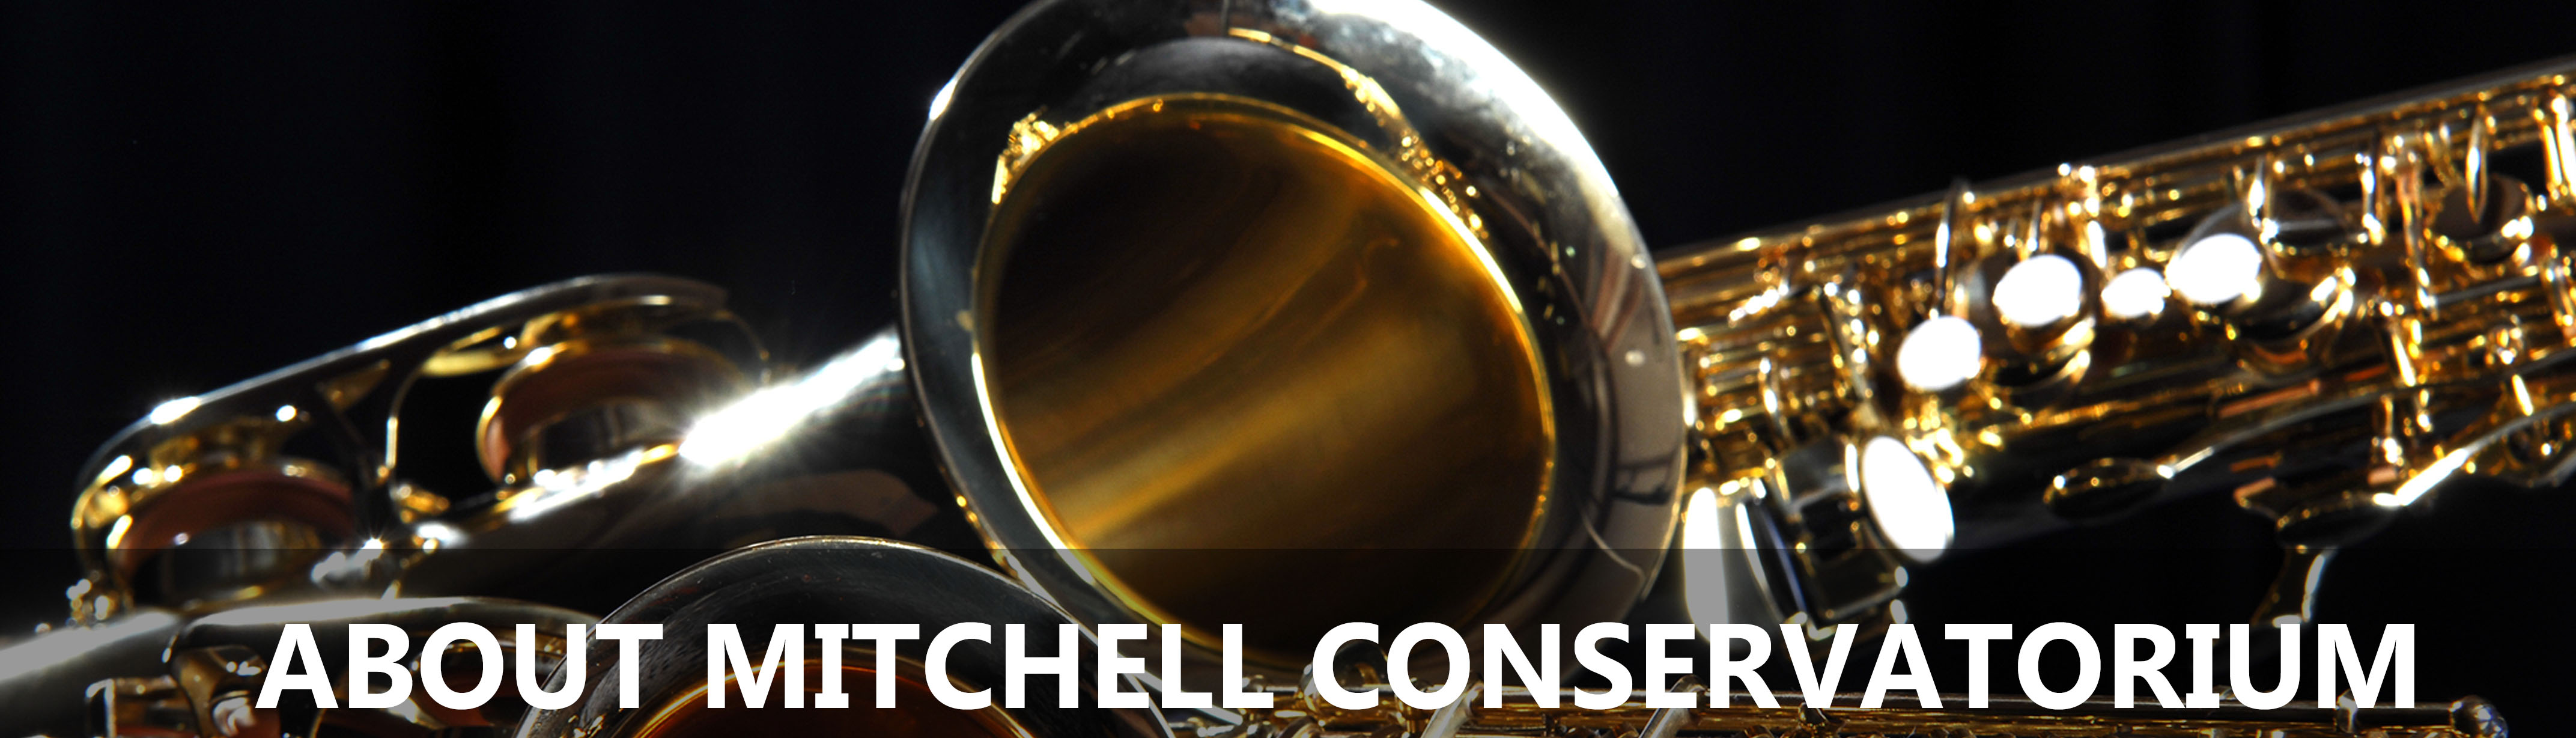 About Mitchell Conservatorium